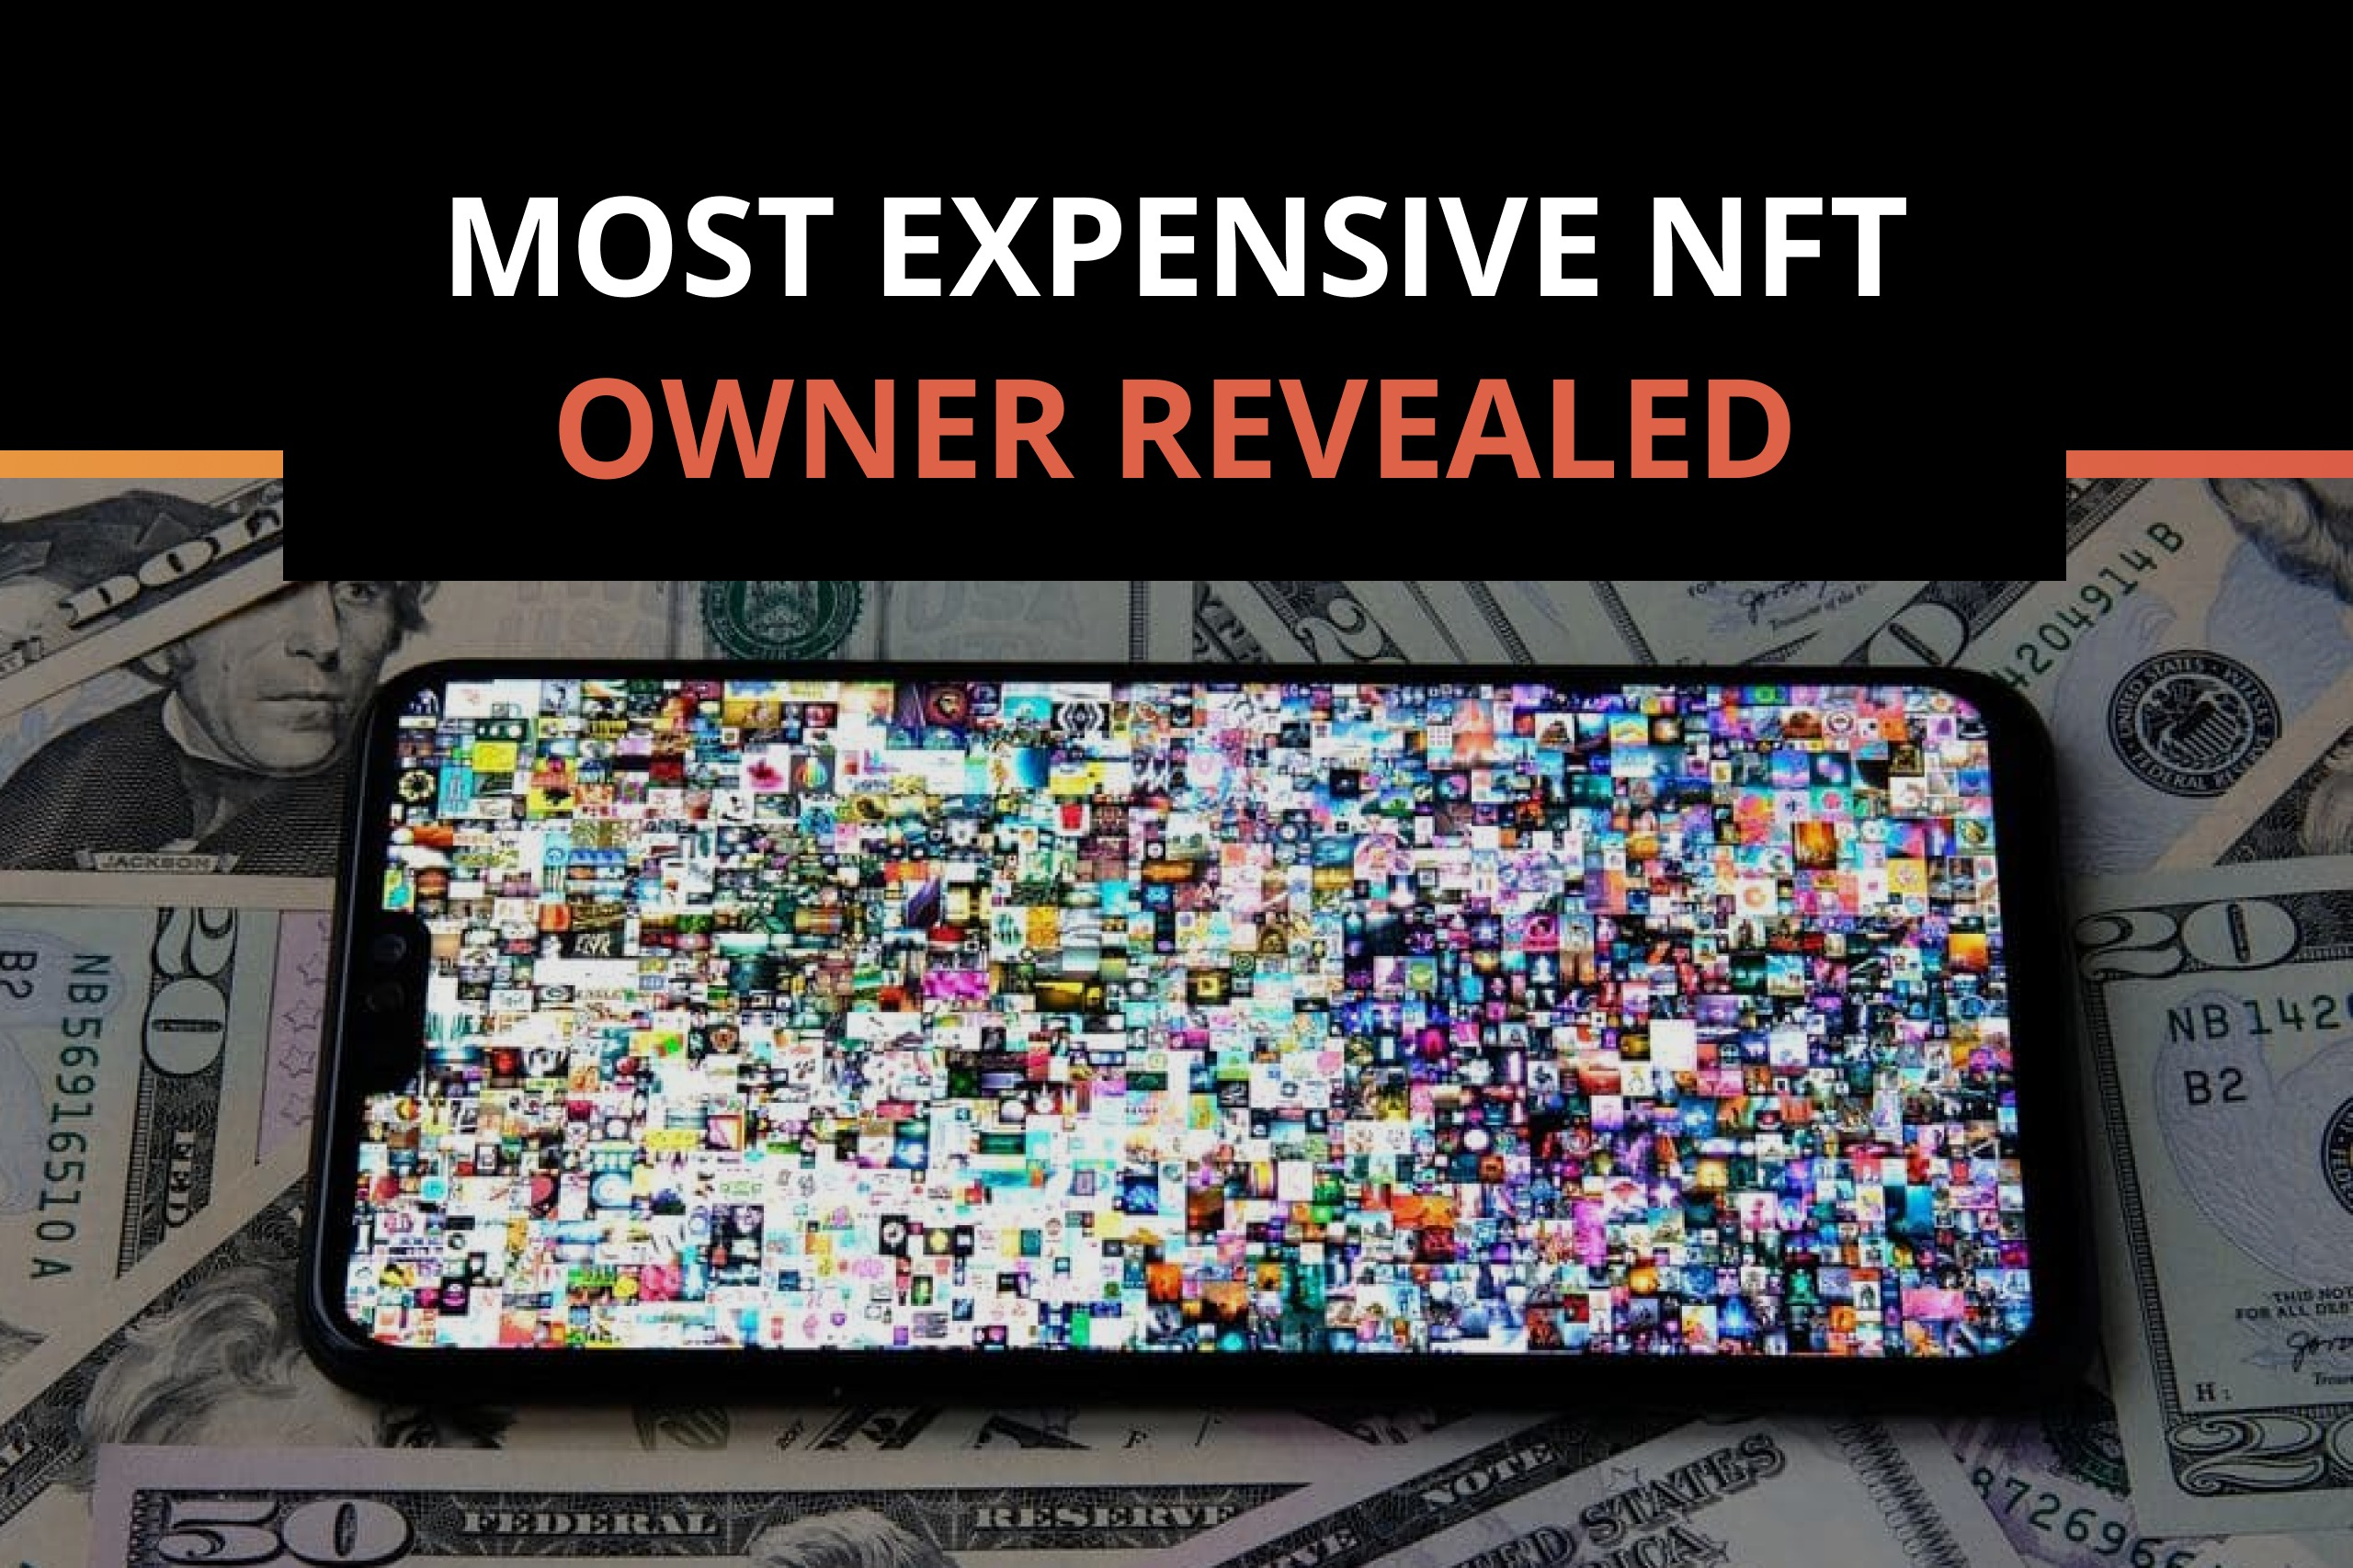 Most Expensive NFT Owner Revealed